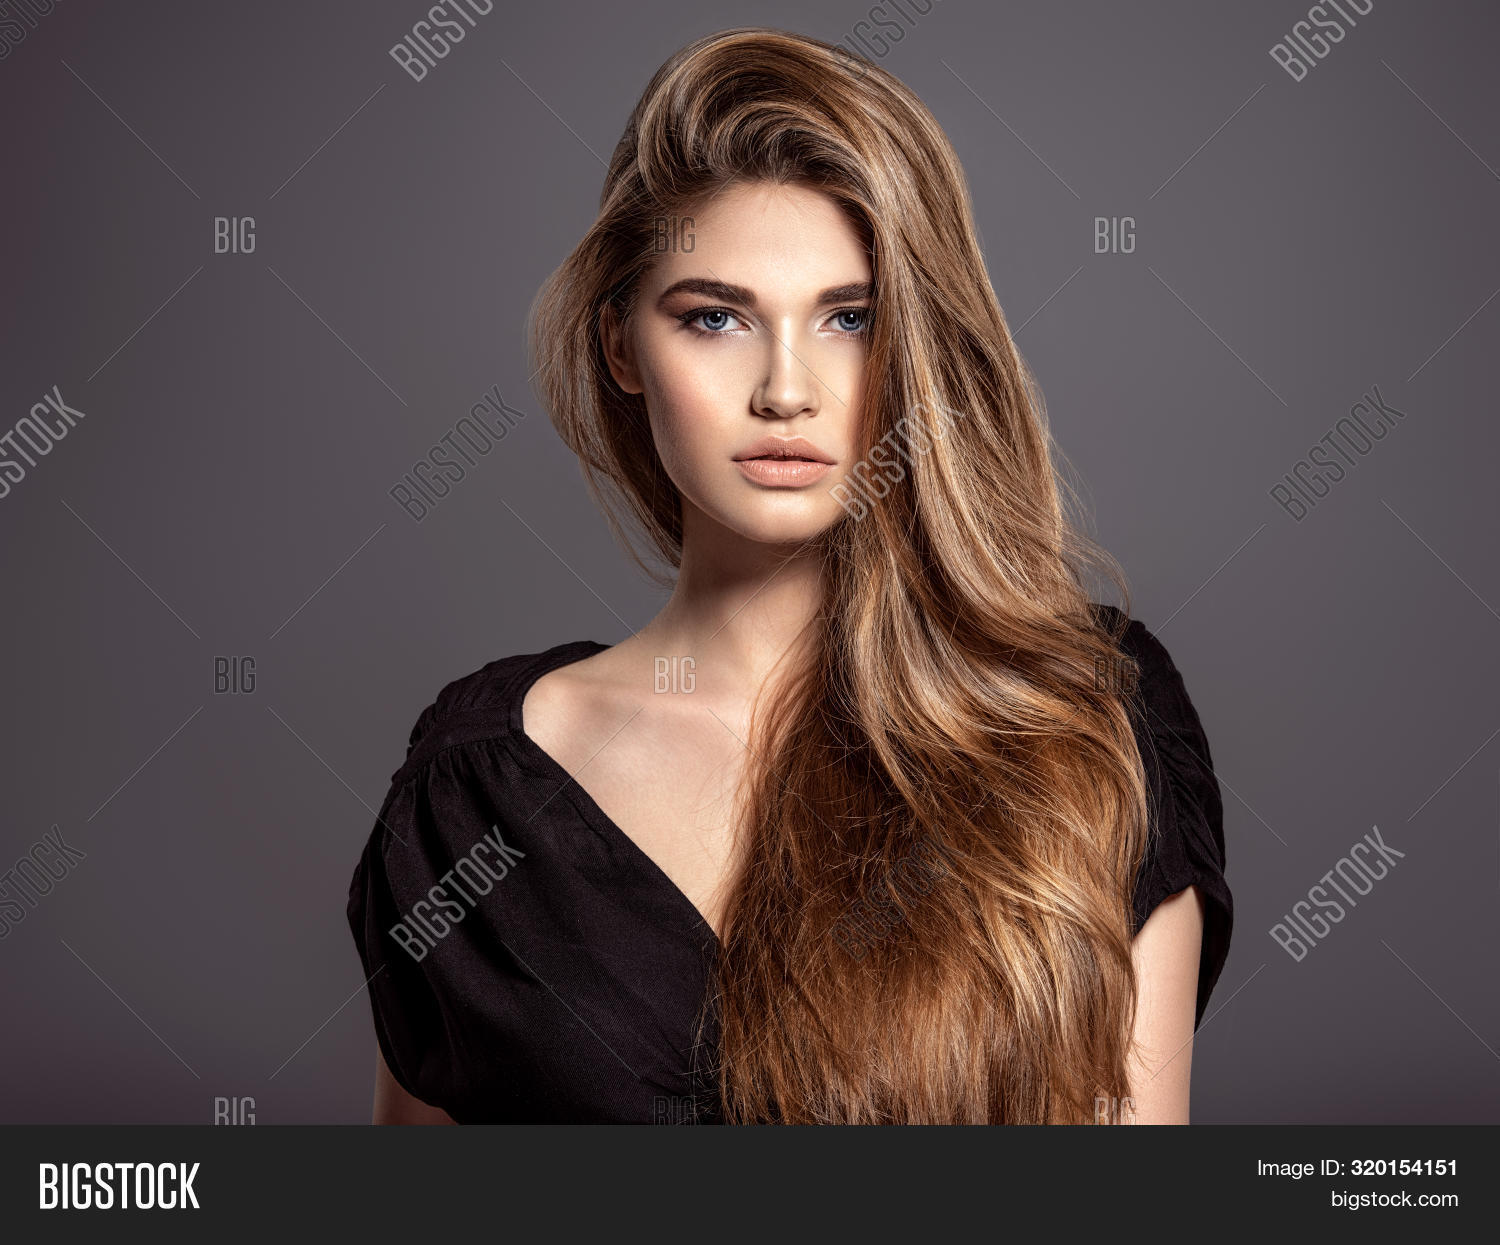 attractive,beautiful,beauty,black,brown,caucasian,closeup,colors,copy space,curly,dress,elegance,elegant,evening,face,fashion,female,front view,girl,glamour,gorgeous,hair,lady,long hair,look,make-up,makeup,model,one,portrait,posing,pretty,sexy,studio,stunning,style,woman,young